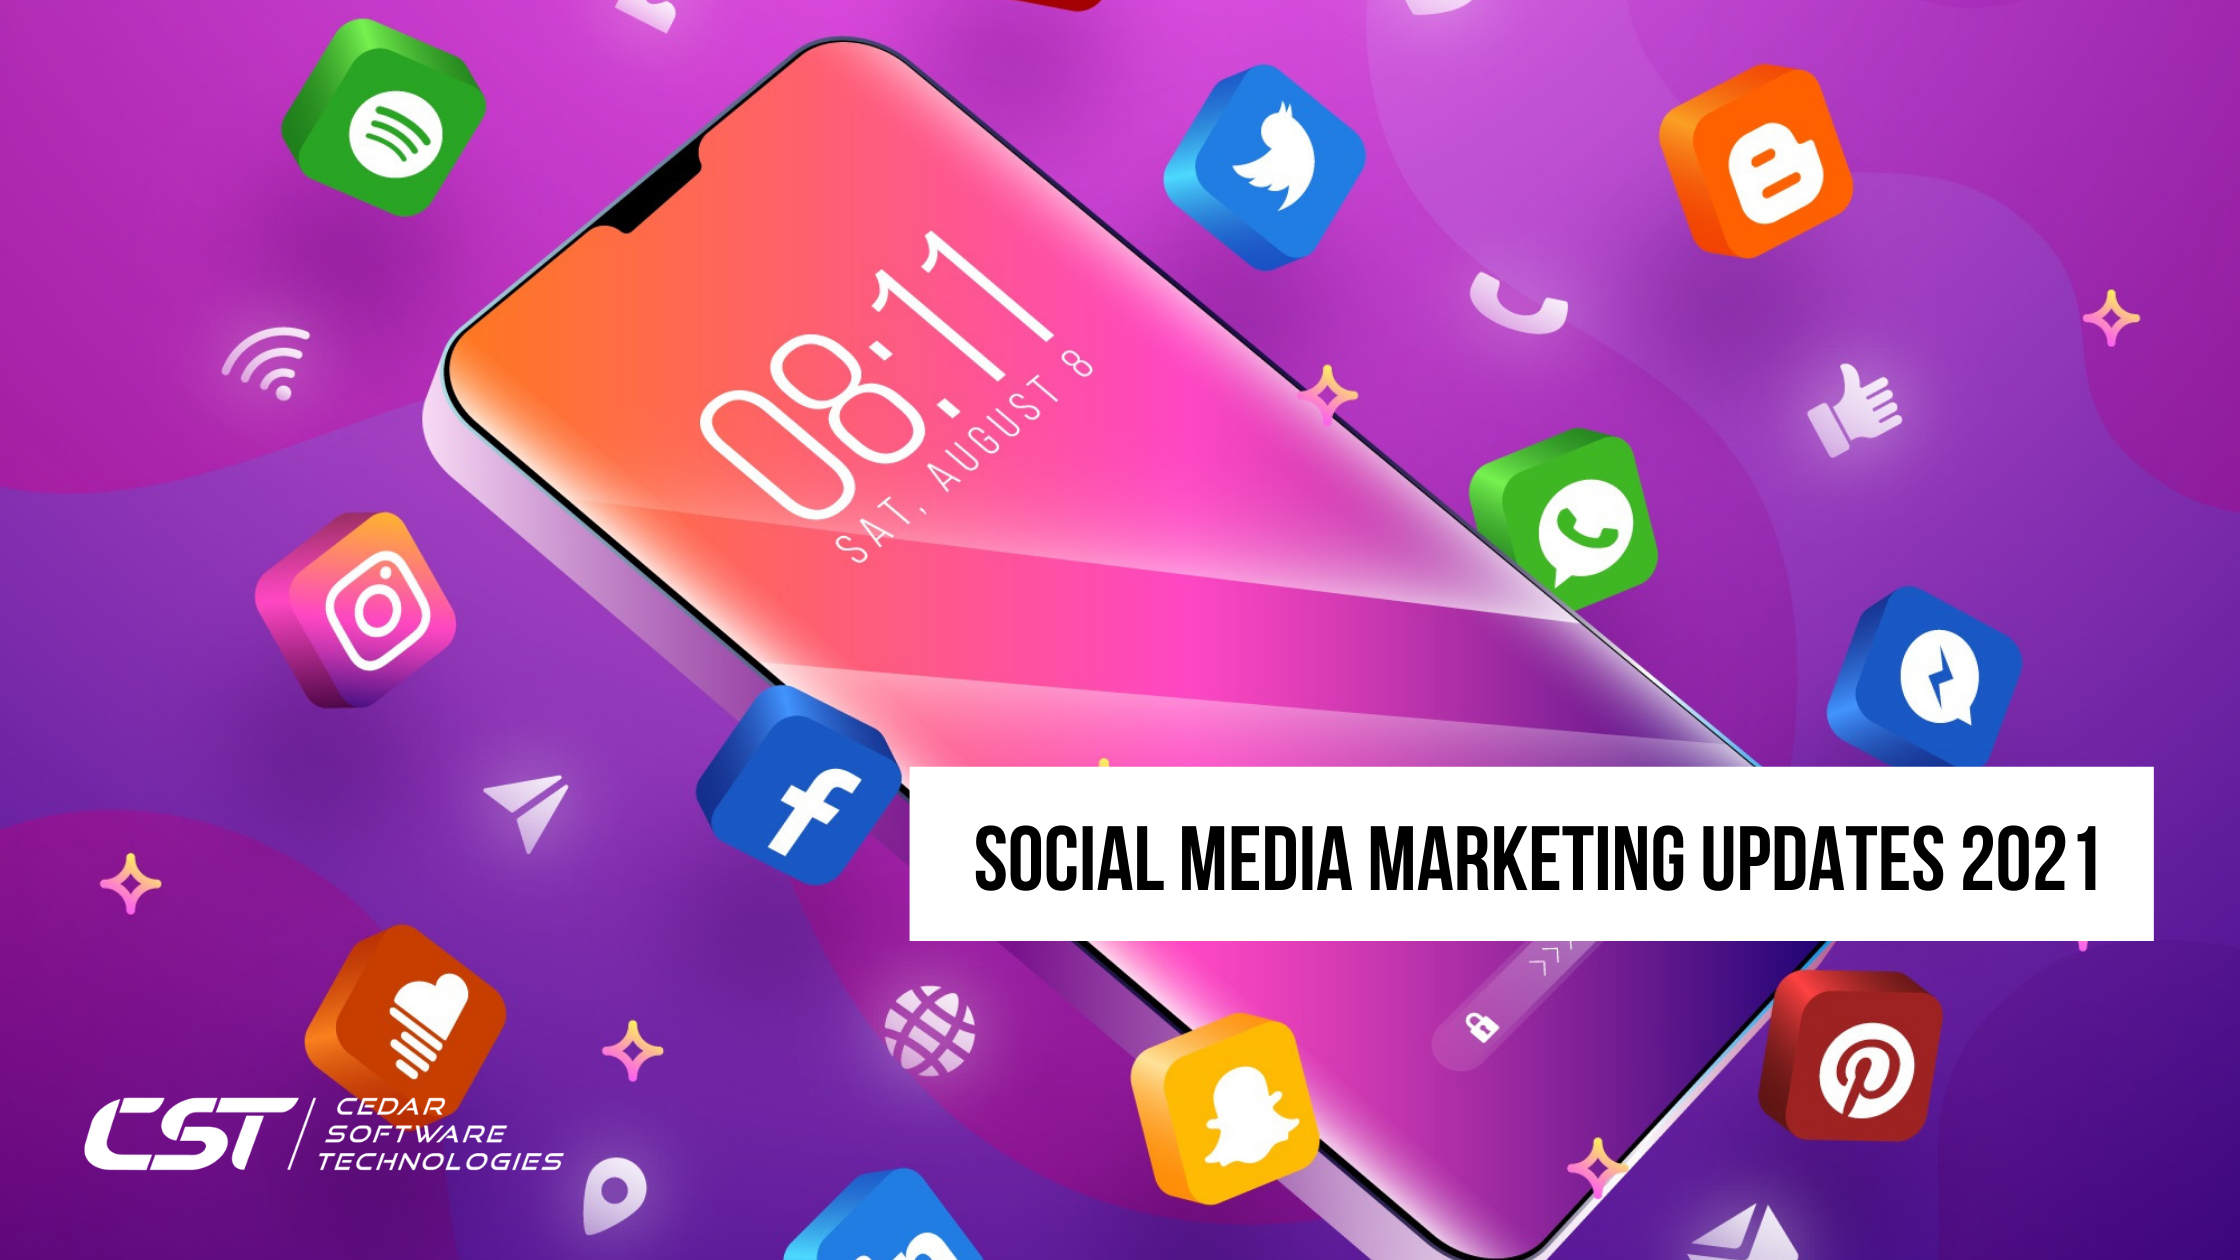 Social Media Marketing Updates 2021